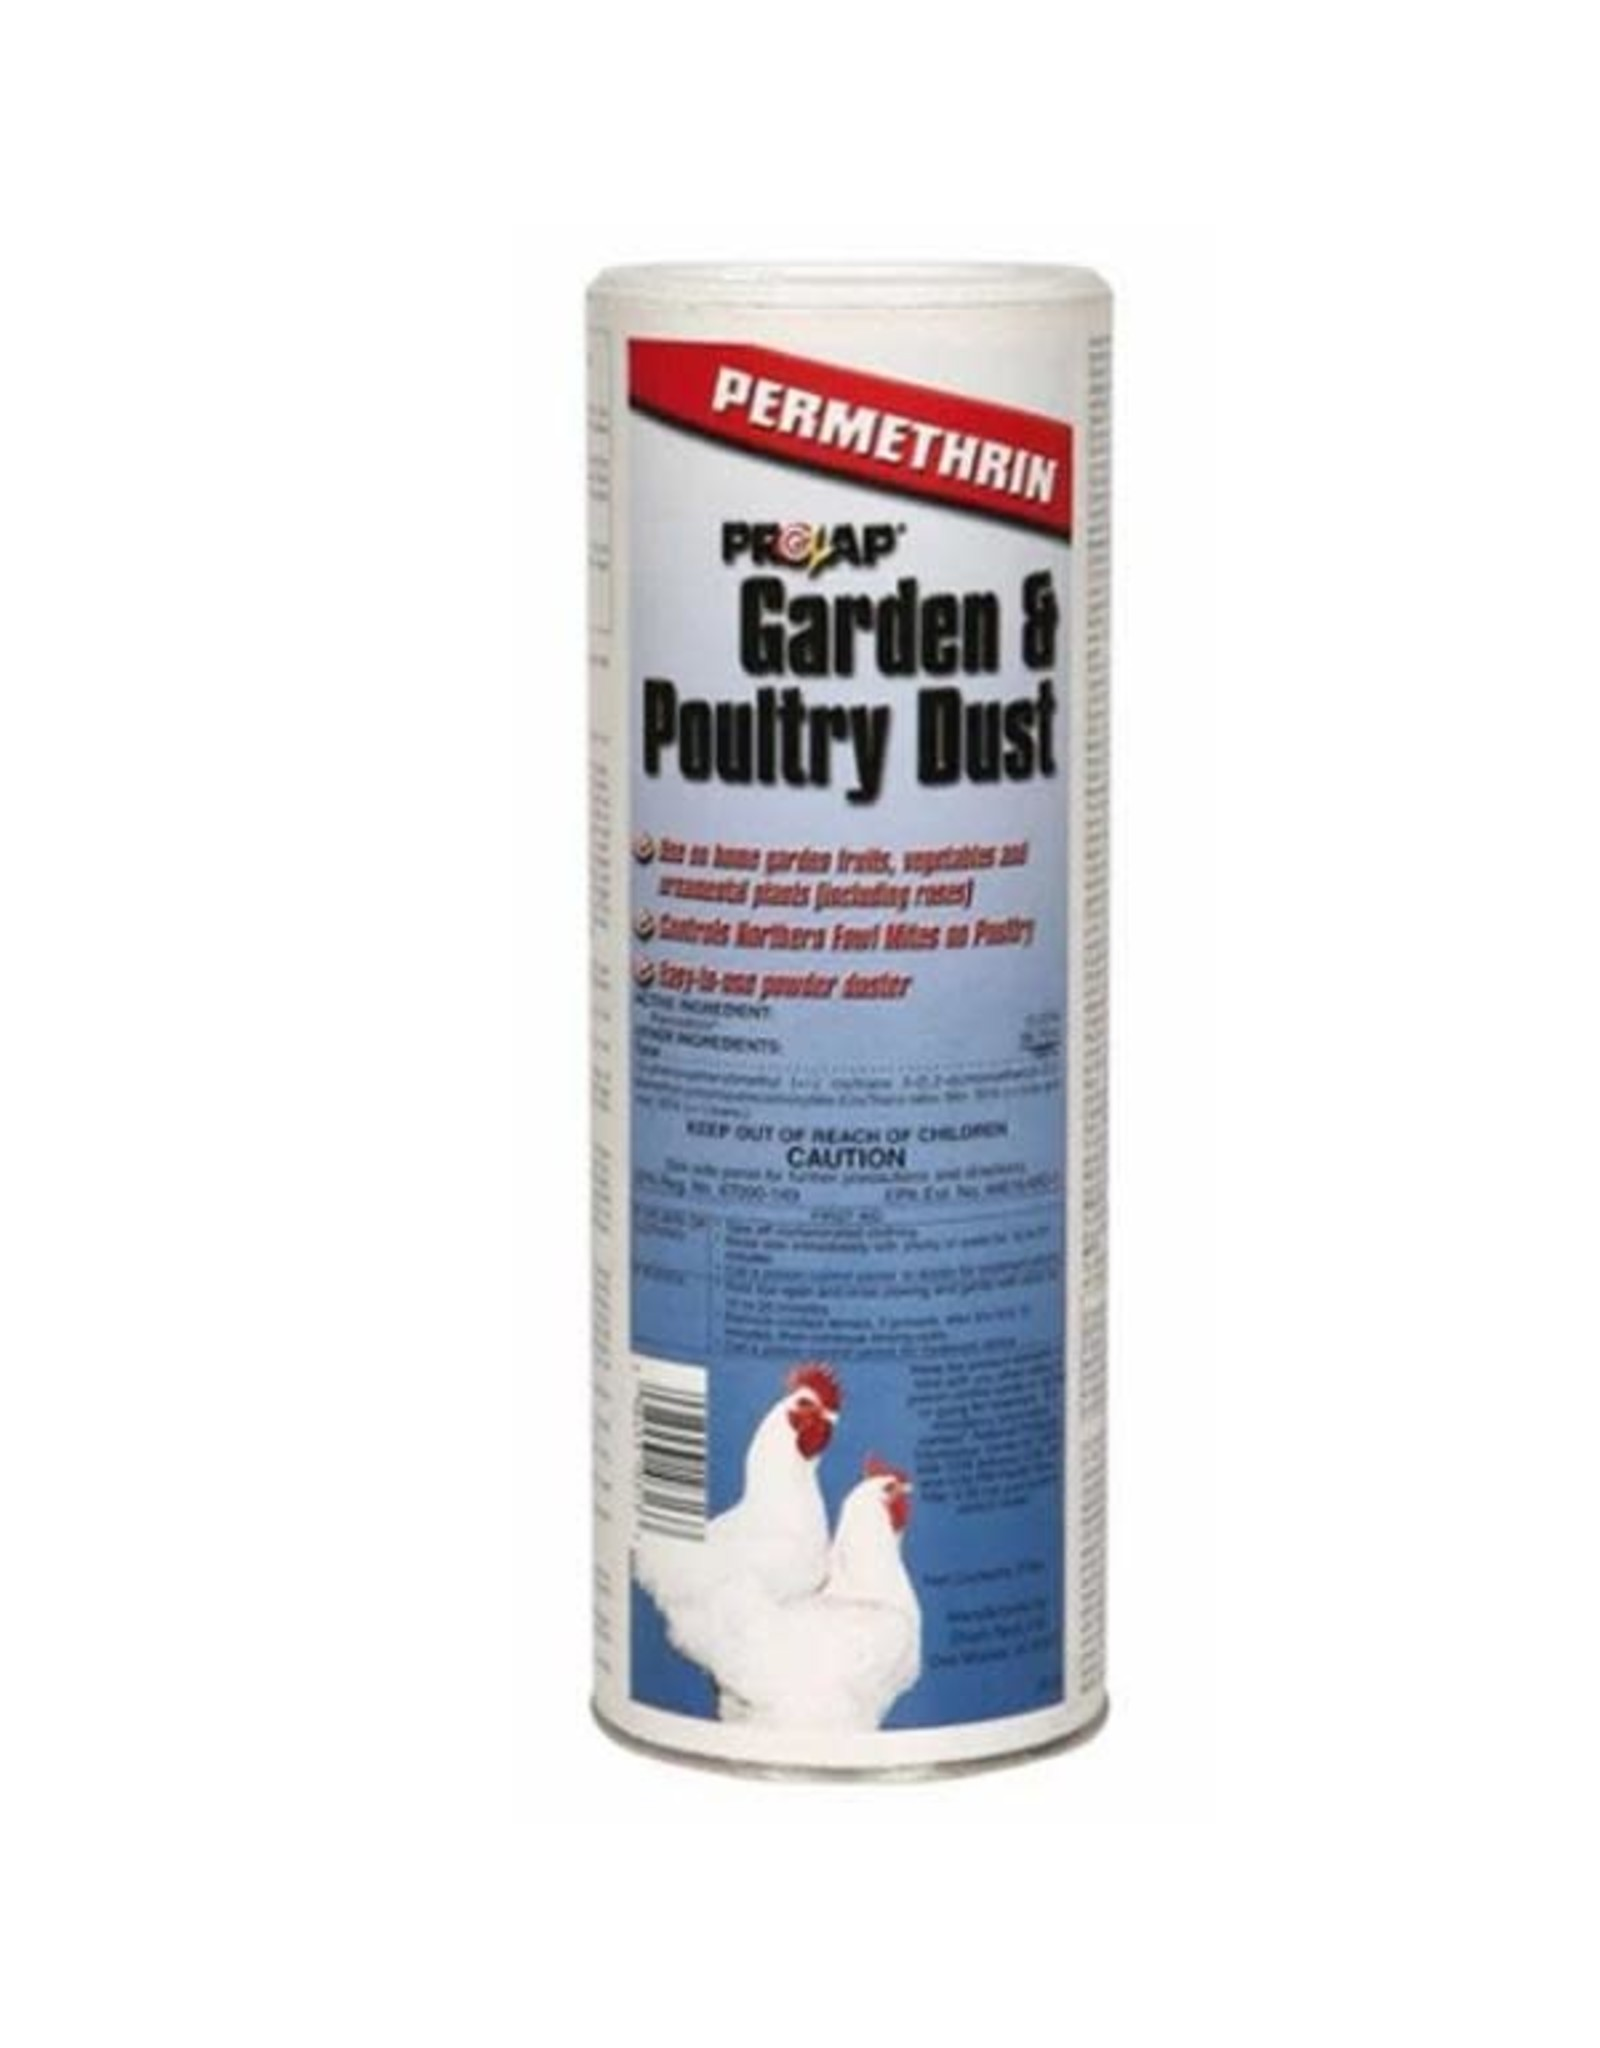 ProZap Prozap Garden and Poultry Dust